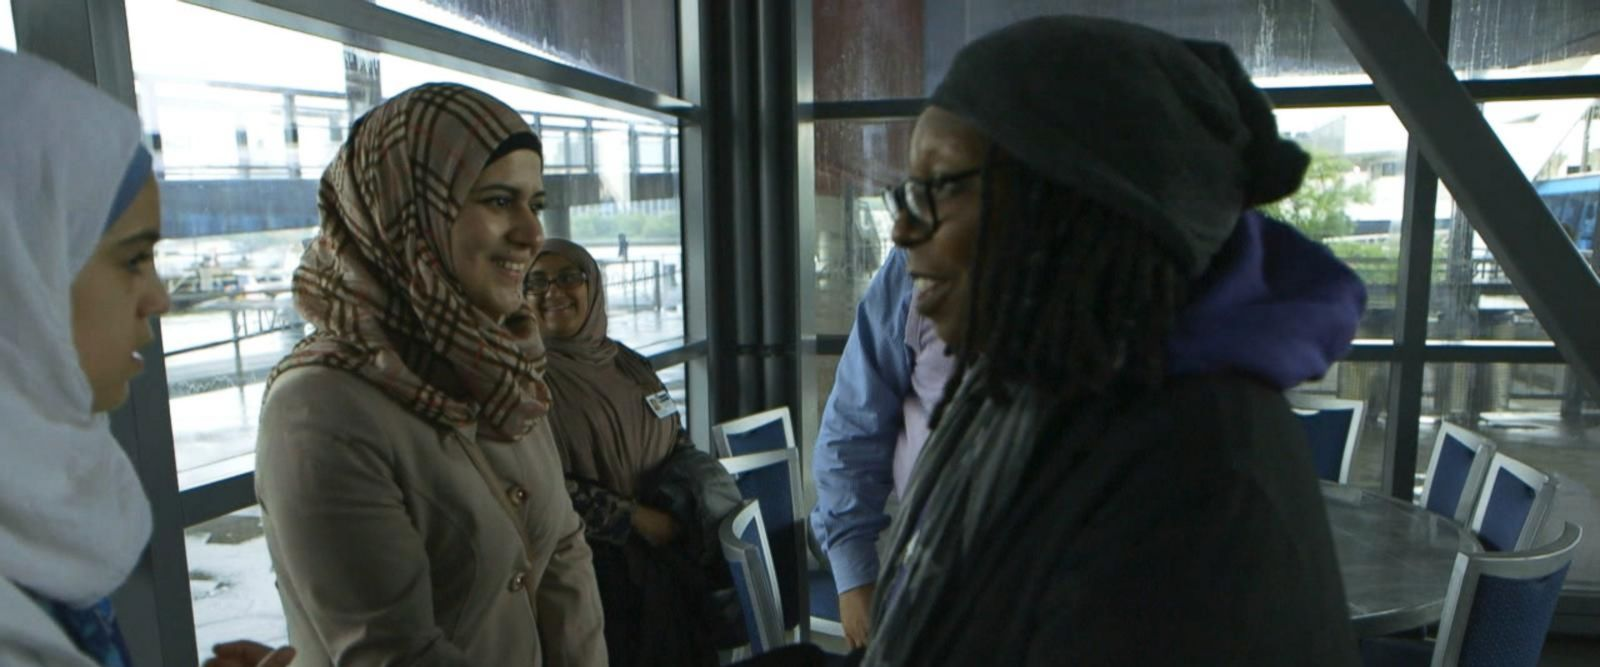 VIDEO: Whoopi Goldberg gives Syrian refugee family a tour of New York